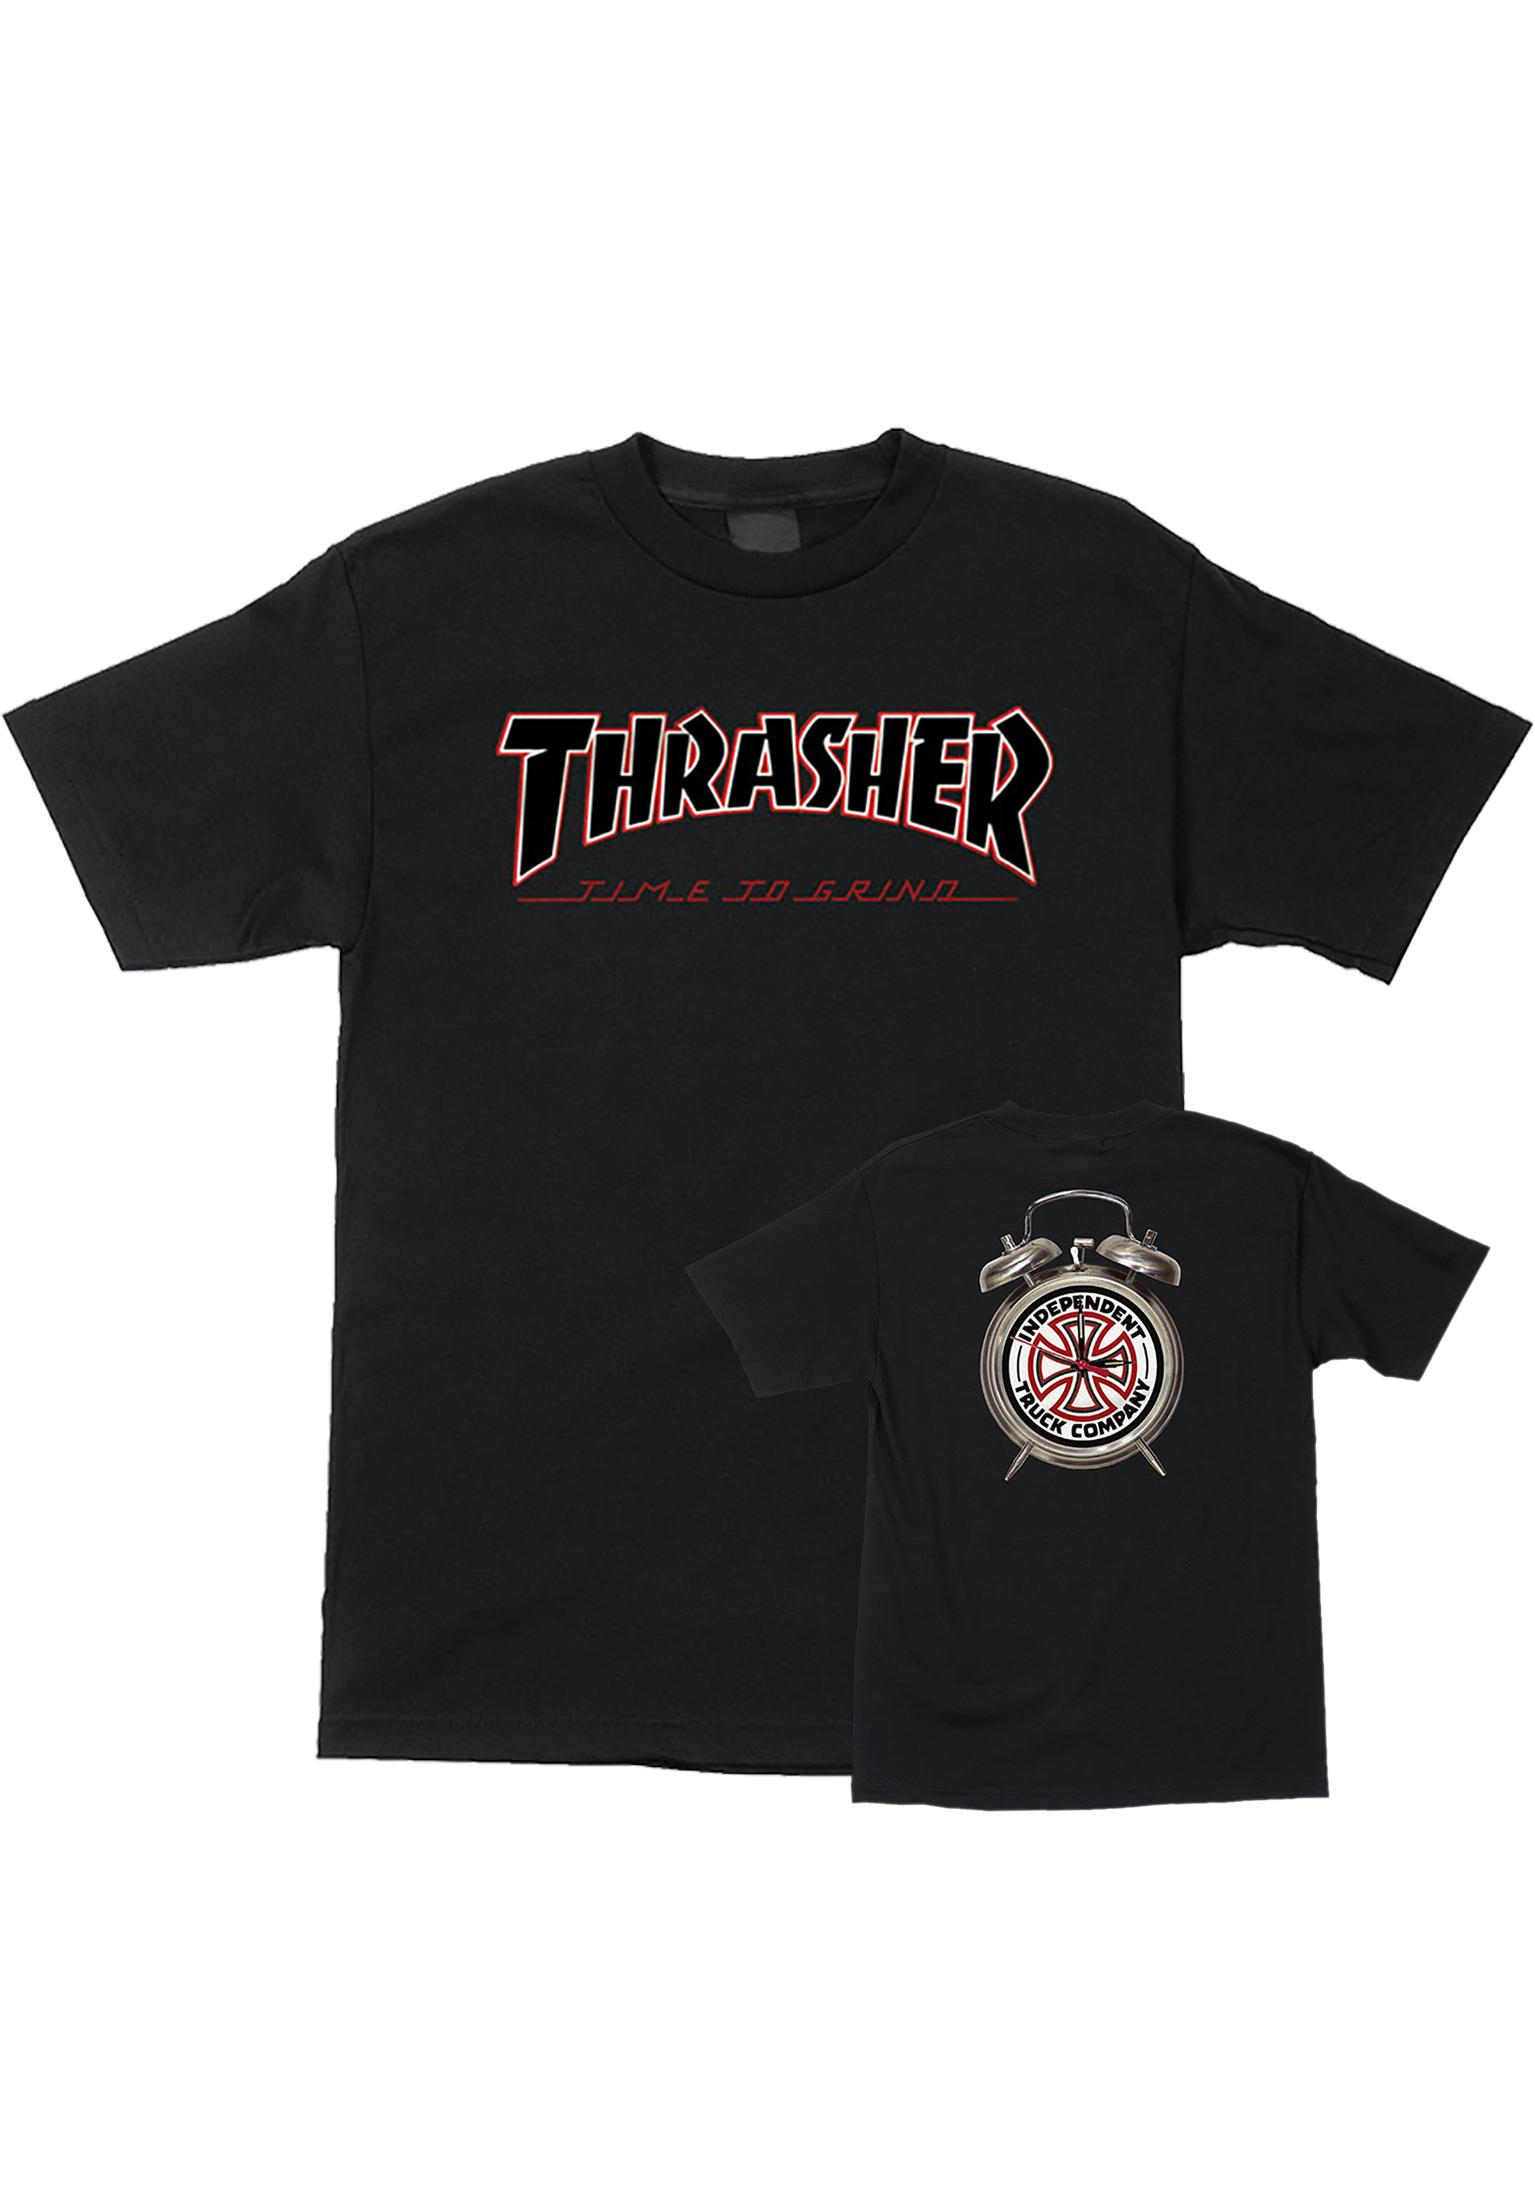 Titus_Muenchen_independent-t-shirt-thrasher-ttg-black-0398638.jpg